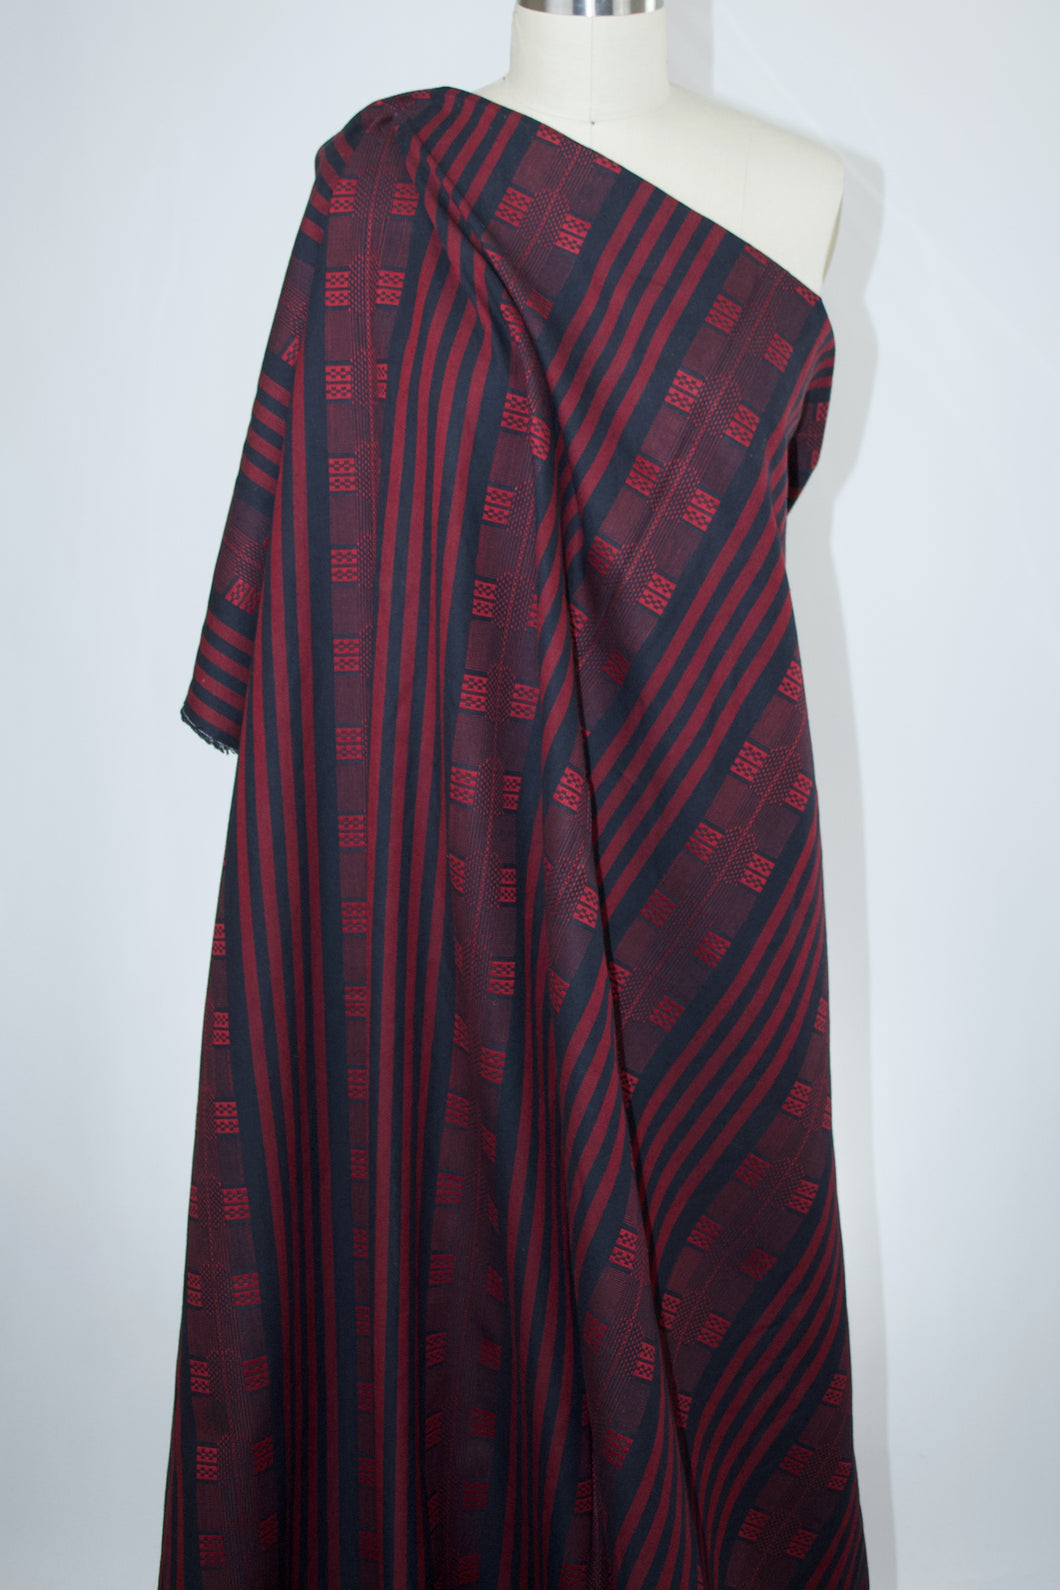 Tribal Style Cotton Jacquard - Red/Black